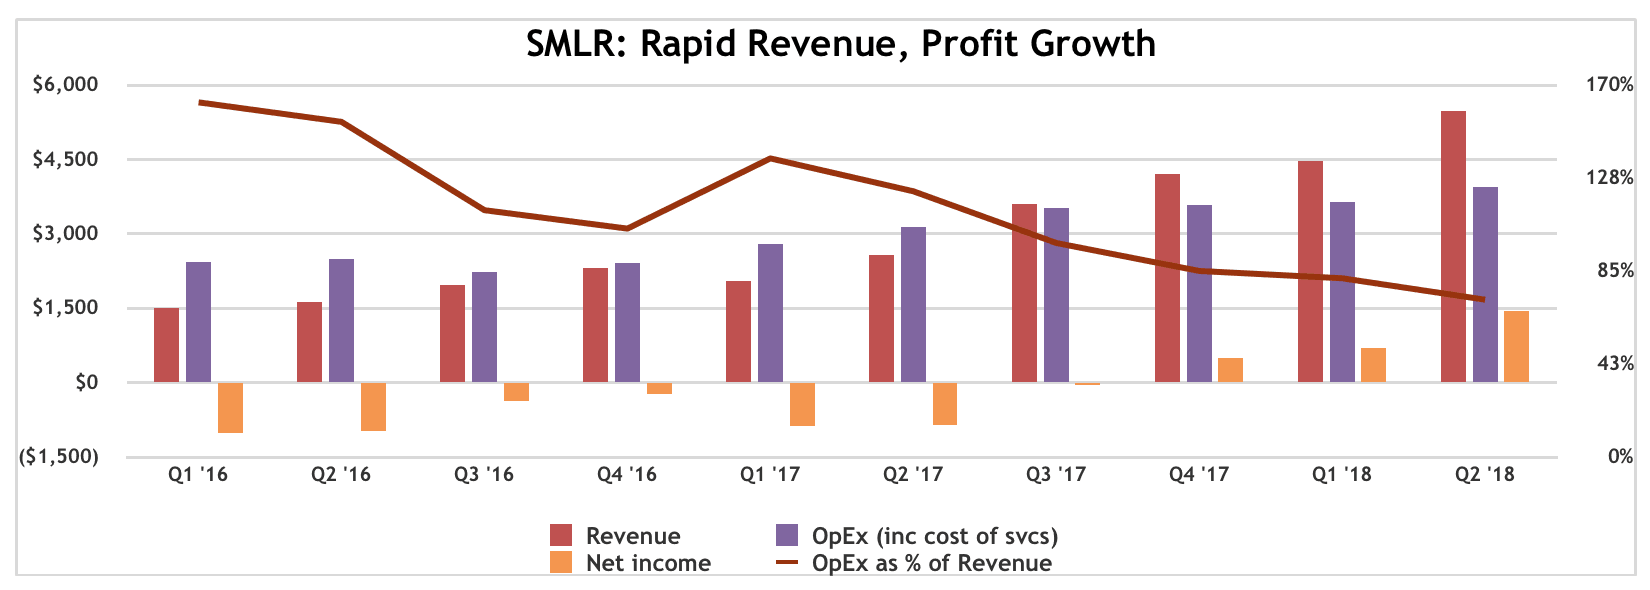 SMLR: Phenomenal Q2, Further Validates Business Model. $25 PT Could Still Be Conservative